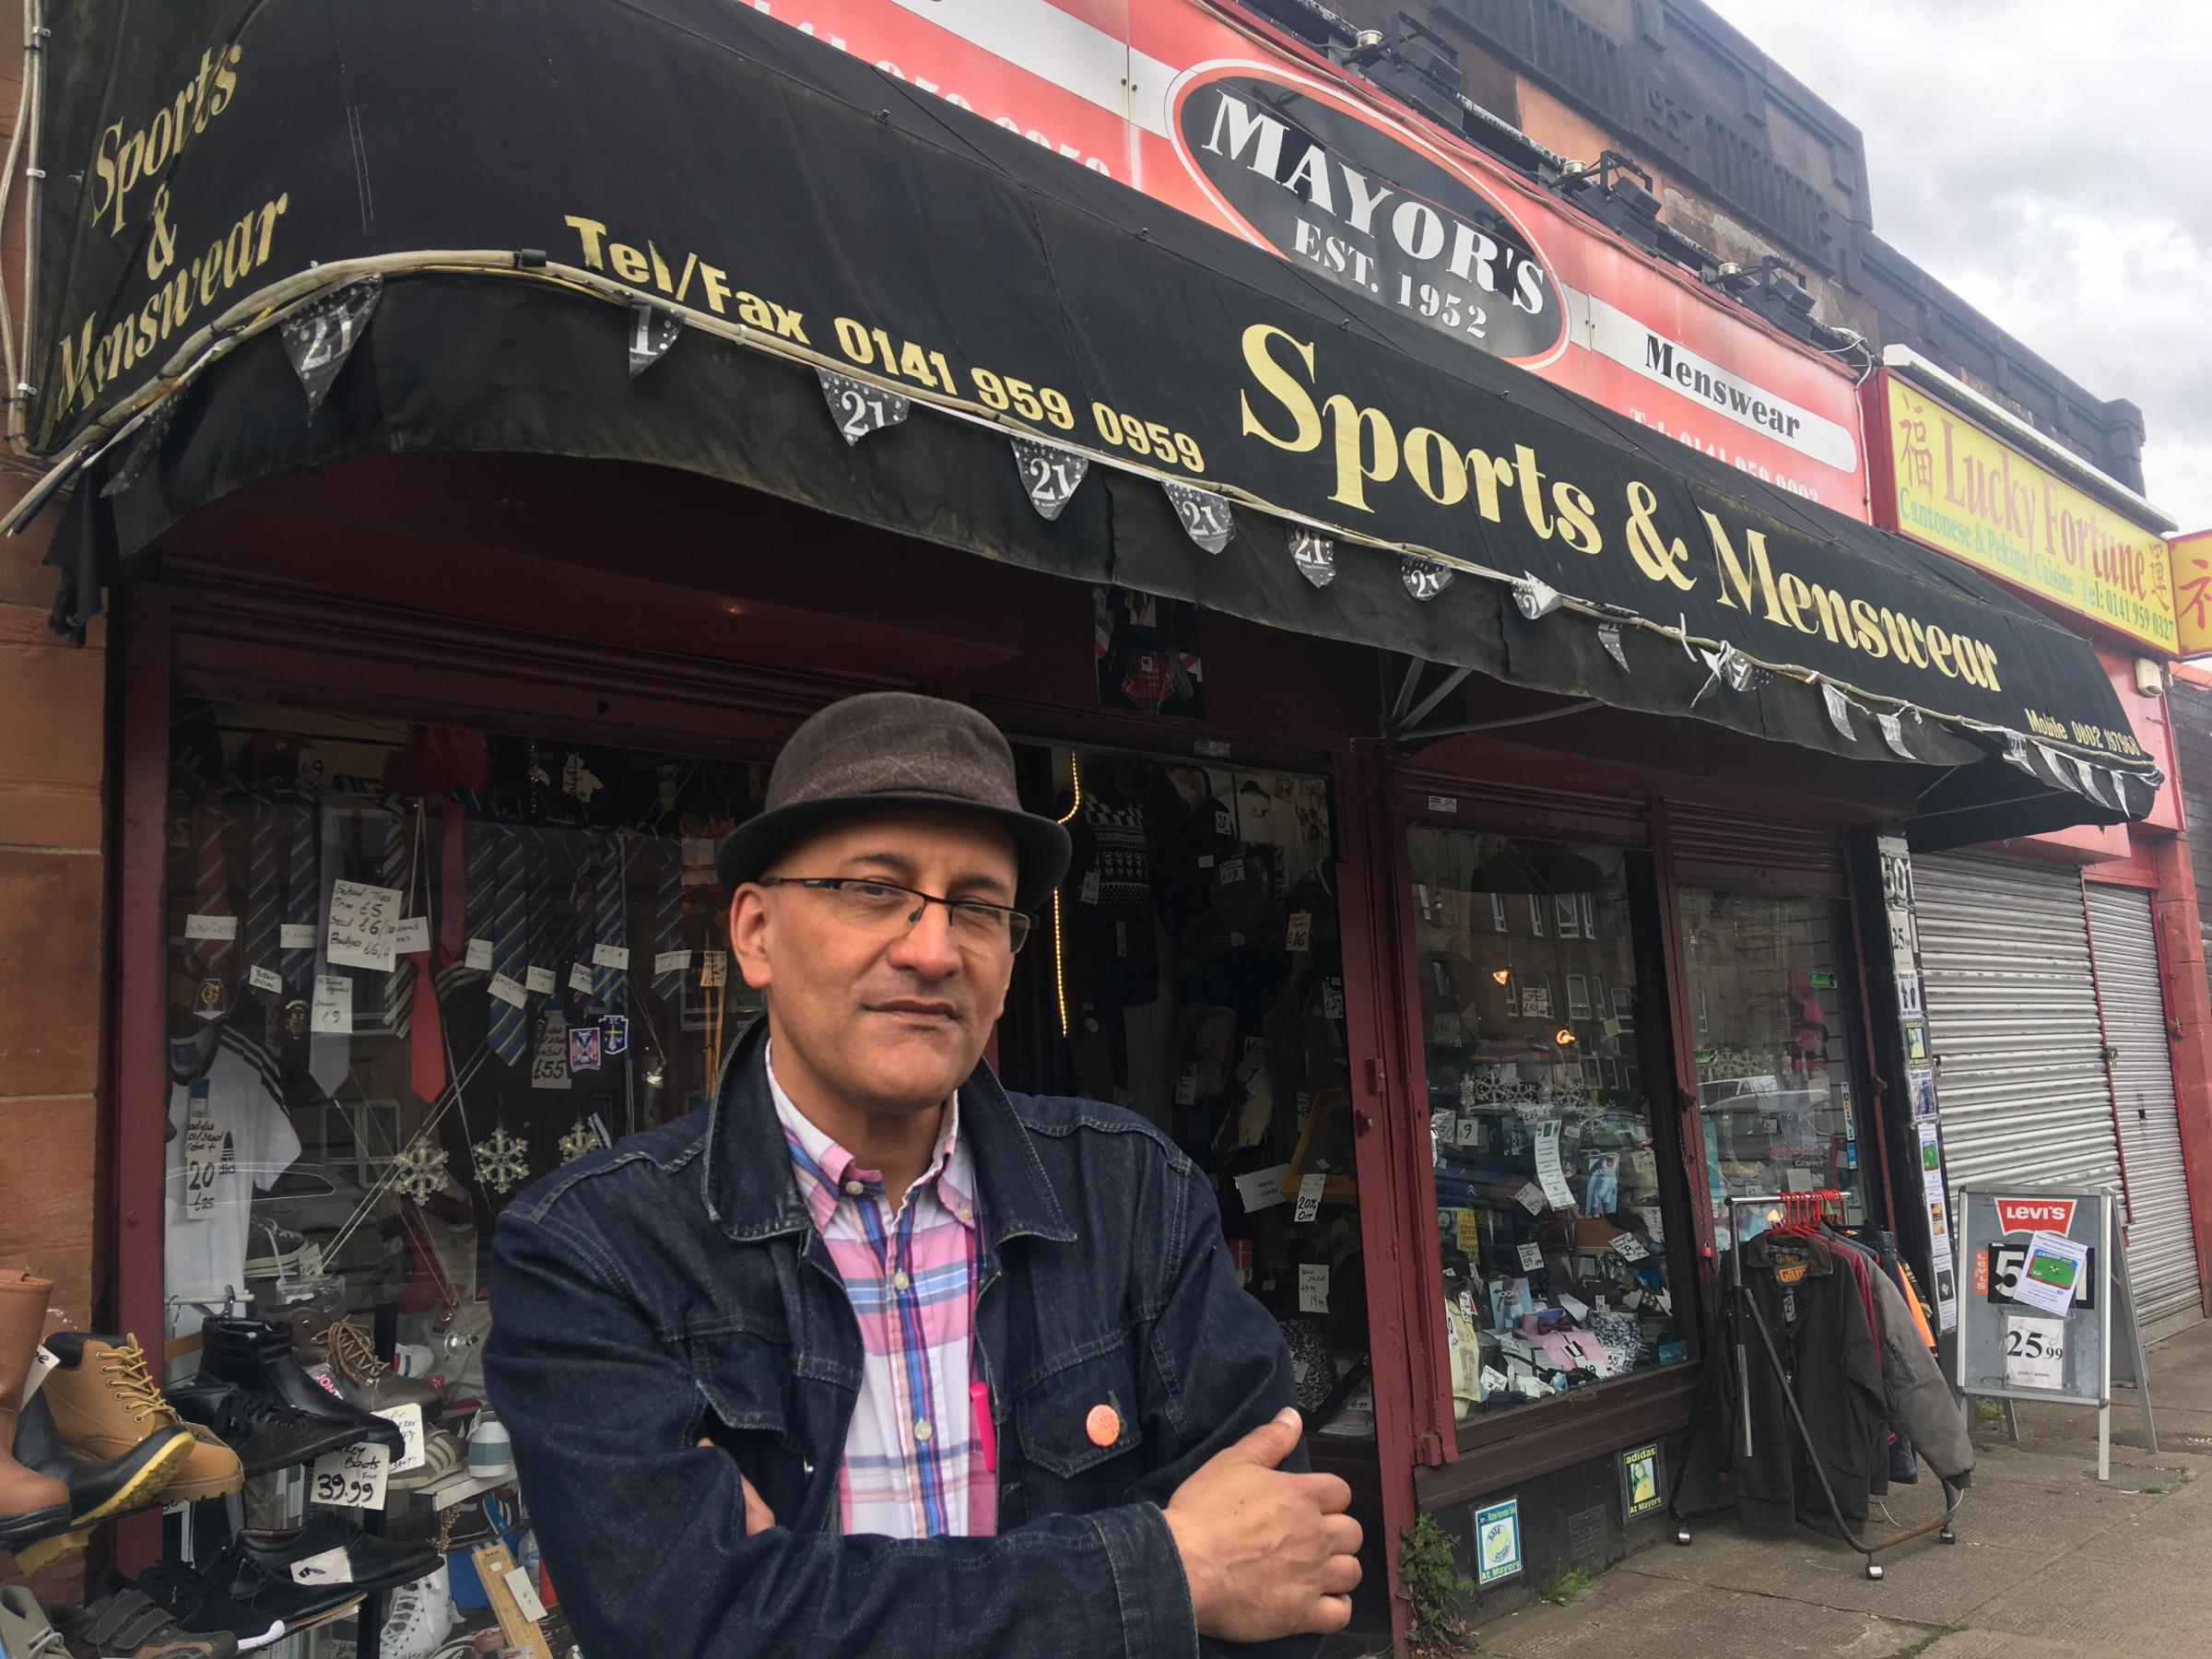 Scotstoun shop owner hits out at business rate hike he says could bankrupt him